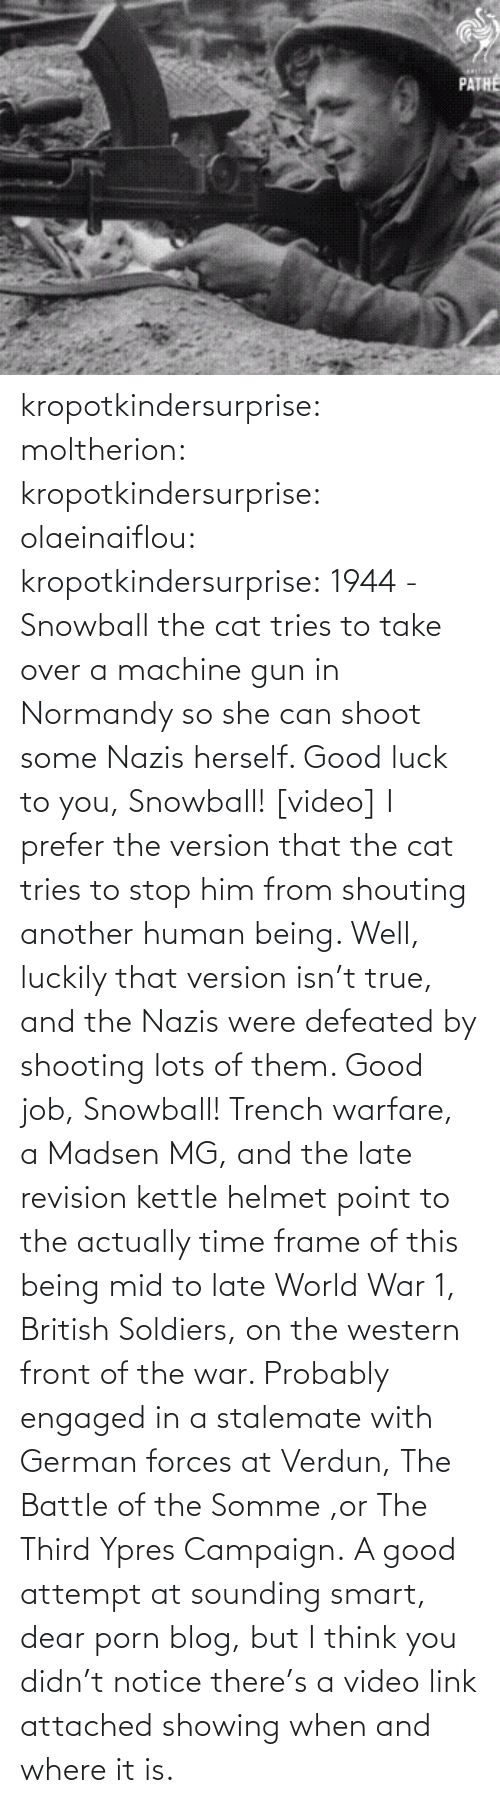 Western: PATHE kropotkindersurprise: moltherion:  kropotkindersurprise:  olaeinaiflou:  kropotkindersurprise: 1944 - Snowball the cat tries to take over a machine gun in Normandy so she can shoot some Nazis herself. Good luck to you, Snowball! [video]  I prefer the version that the cat tries to stop him from shouting another human being.   Well, luckily that version isn't true, and the Nazis were defeated by shooting lots of them. Good job, Snowball!   Trench warfare, a Madsen MG, and the late revision kettle helmet point to the actually time frame of this being mid to late World War 1, British Soldiers, on the western front of the war. Probably engaged in a stalemate with German forces at Verdun, The Battle of the Somme ,or The Third Ypres Campaign.  A good attempt at sounding smart, dear porn blog, but I think you didn't notice there's a video link attached showing when and where it is.